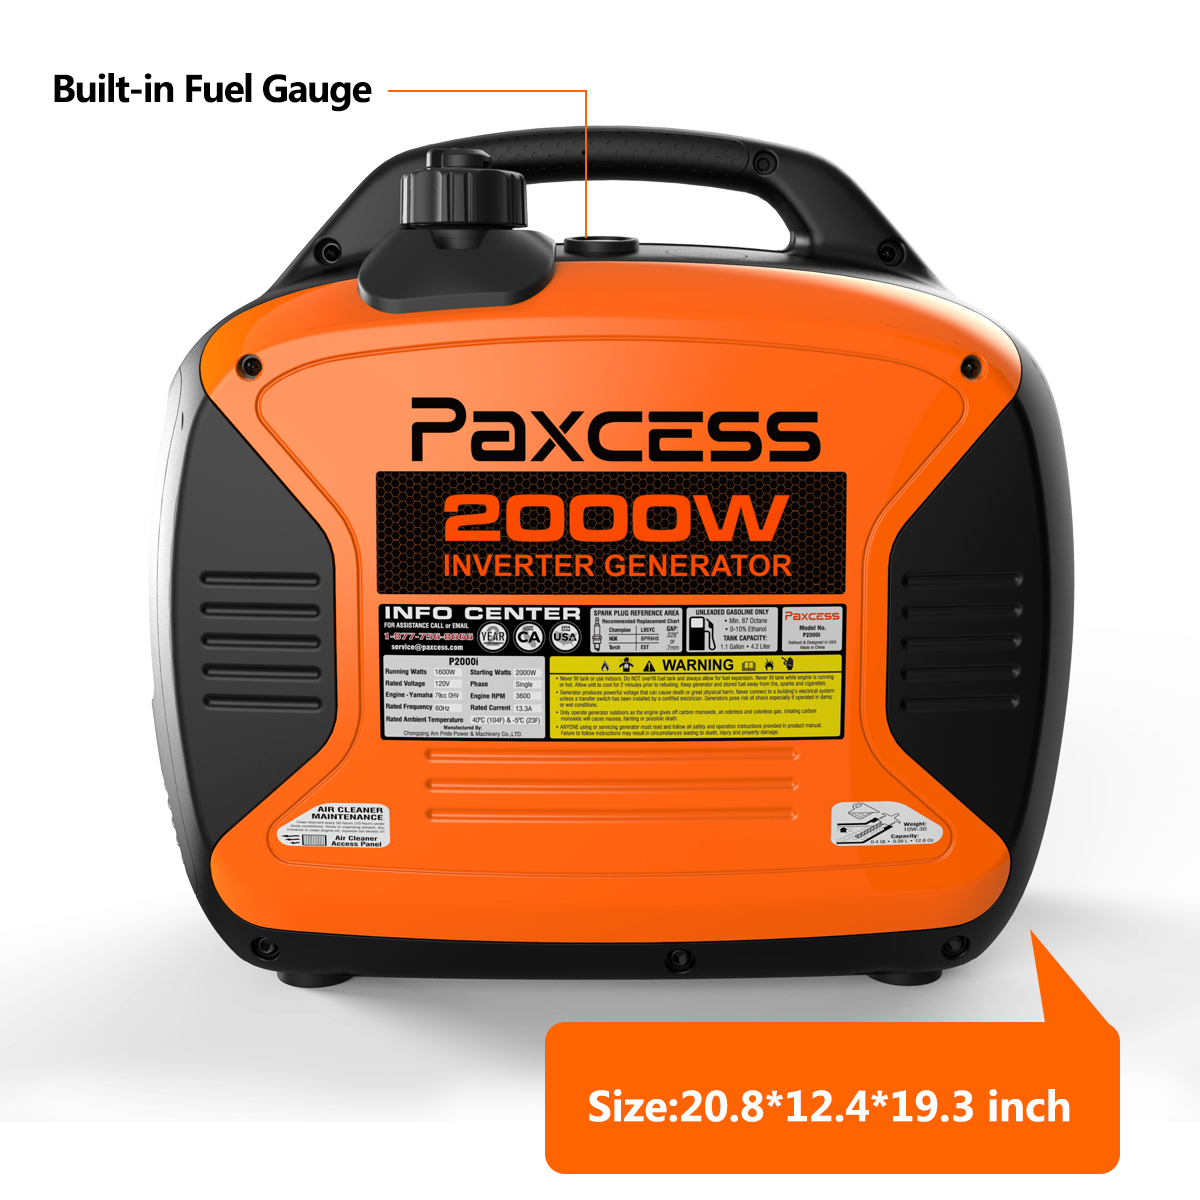 Paxcess 2000 Watts Portable Generator RV Ready Inverter Generator With Parallel Capability, Eco-Mode, CARB Complaint, 120V 30A/20A AC Outlet/USB/Cigarette Ports/12V DC Output